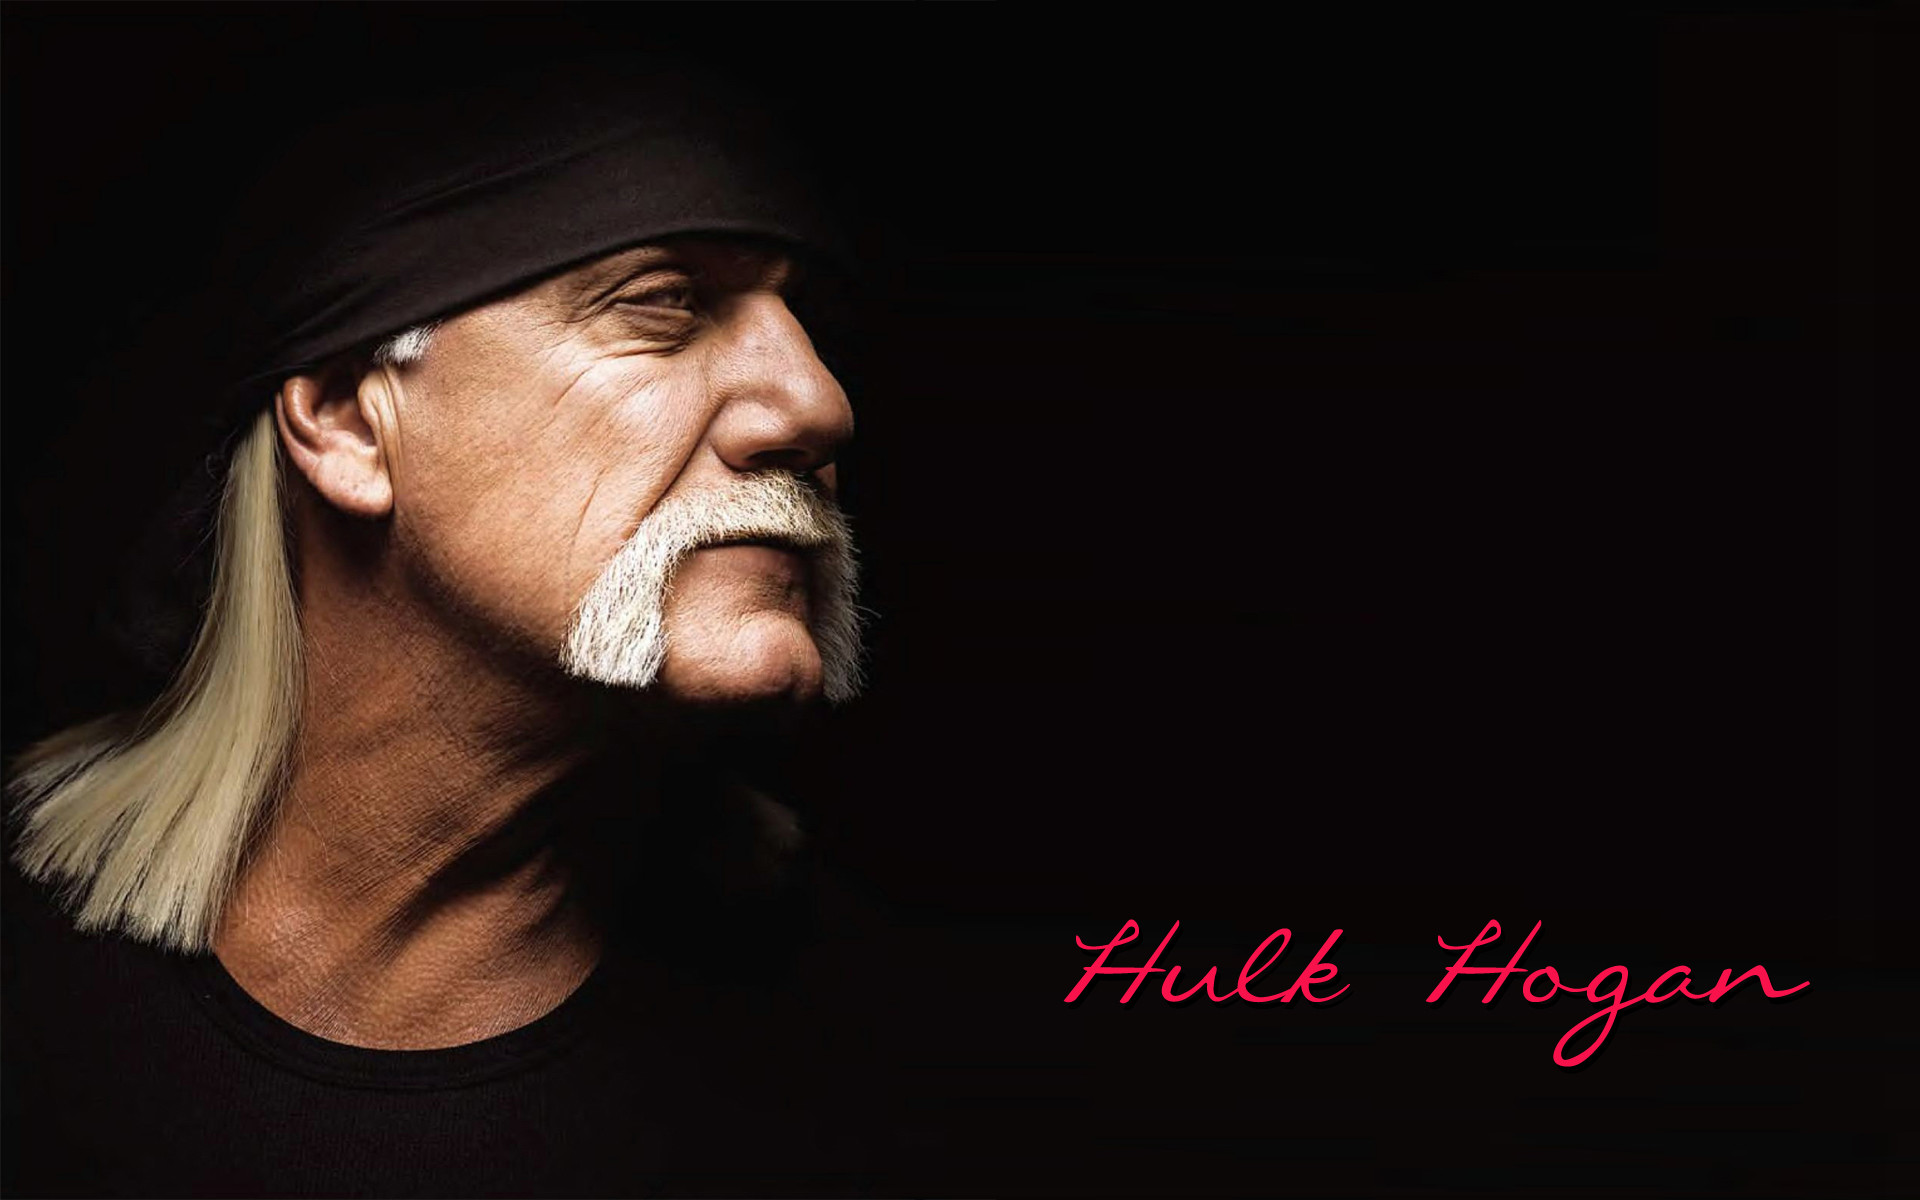 1920x1200 Hulk Hogan wallpaper | WWE wallpaper | Pinterest | Hulk hogan, Hulk and  Wallpaper